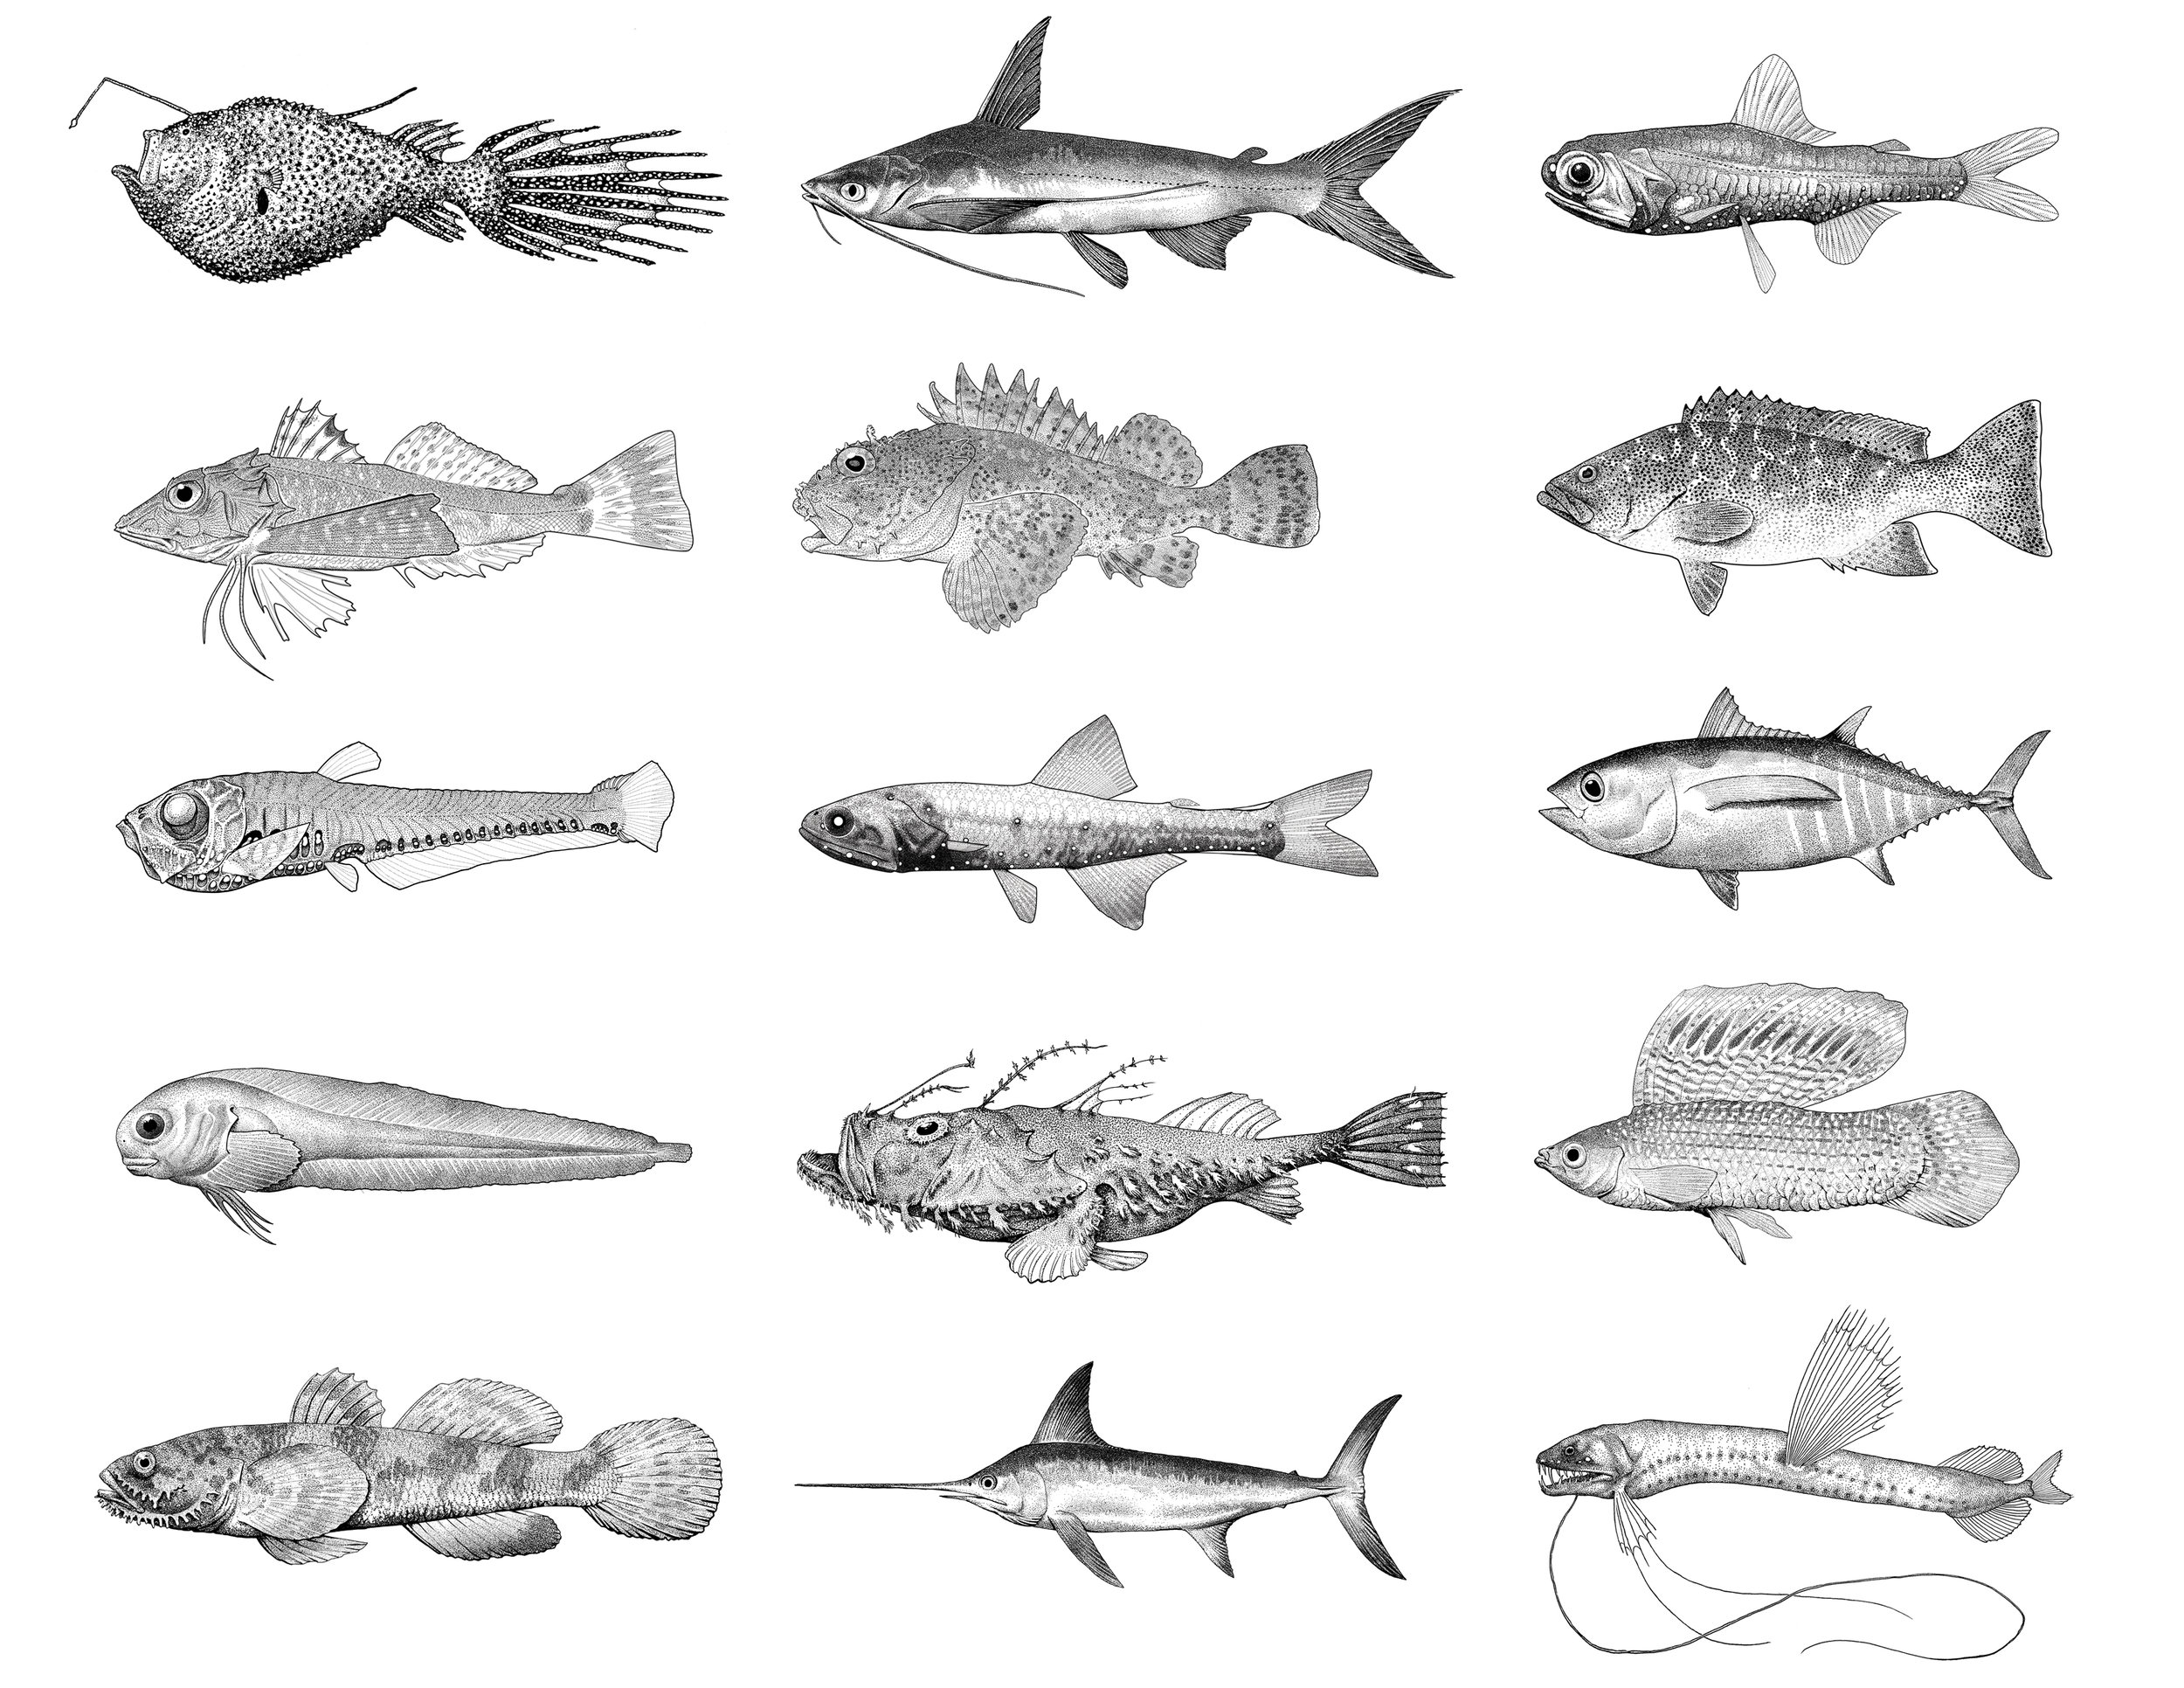 FISH OF CALIFORNIA–Ink on paper. IllustrationS depicting various southern California fish species. For a more comprehensive collection of drawings,  click here.